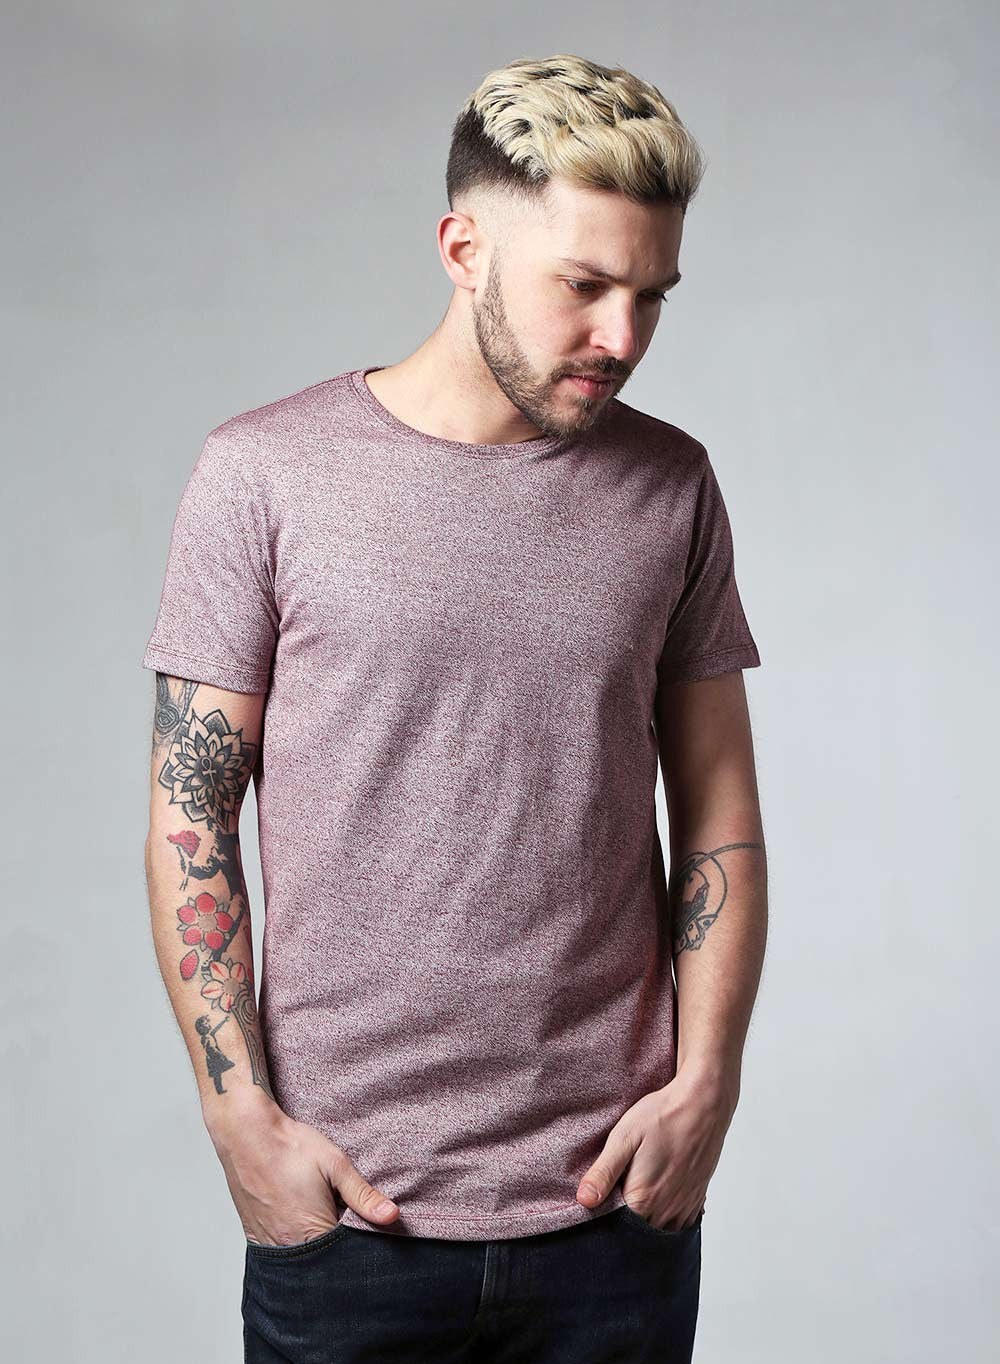 Lindbergh Slim Fit Burgundy Marl T-shirt - LoveClothing.com - 1